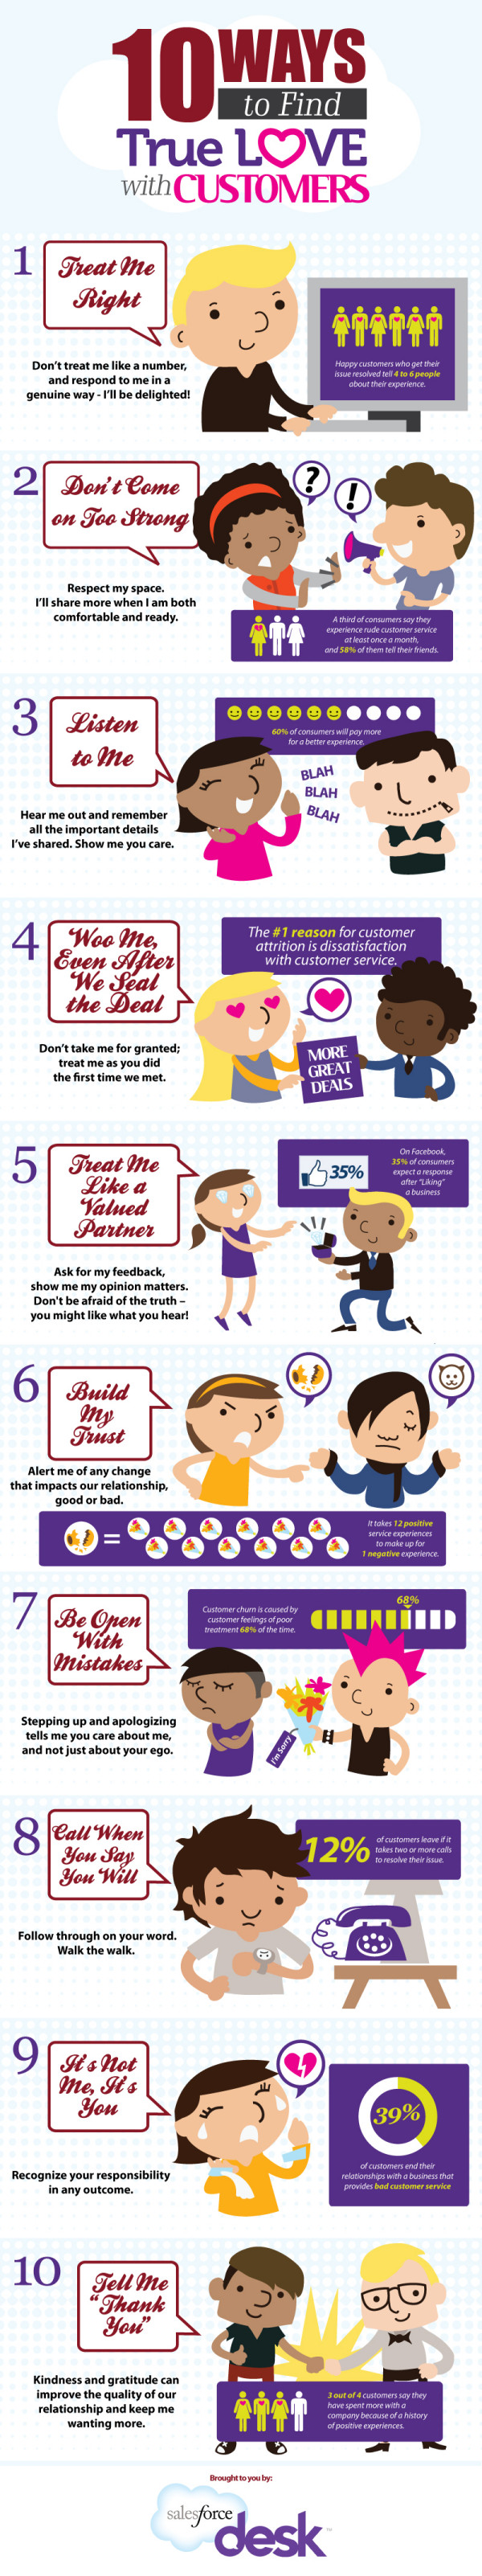 10 ways to find true love with customers  infographic   with images